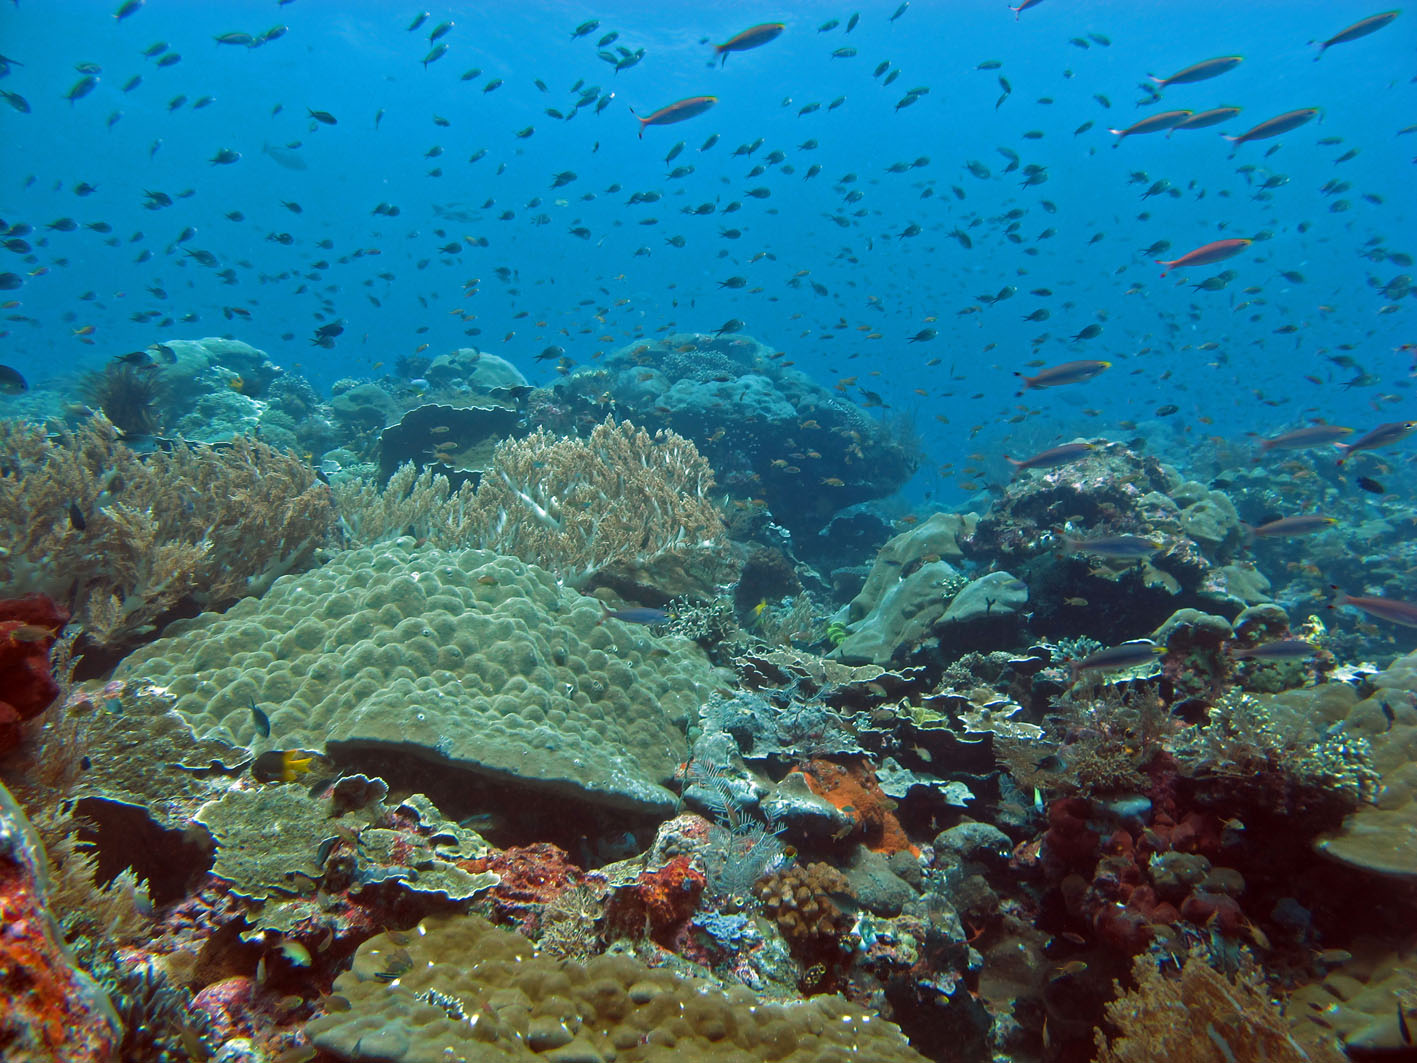 Raja Ampur Coral Triangle 2 photo Lakshmi Sawitri